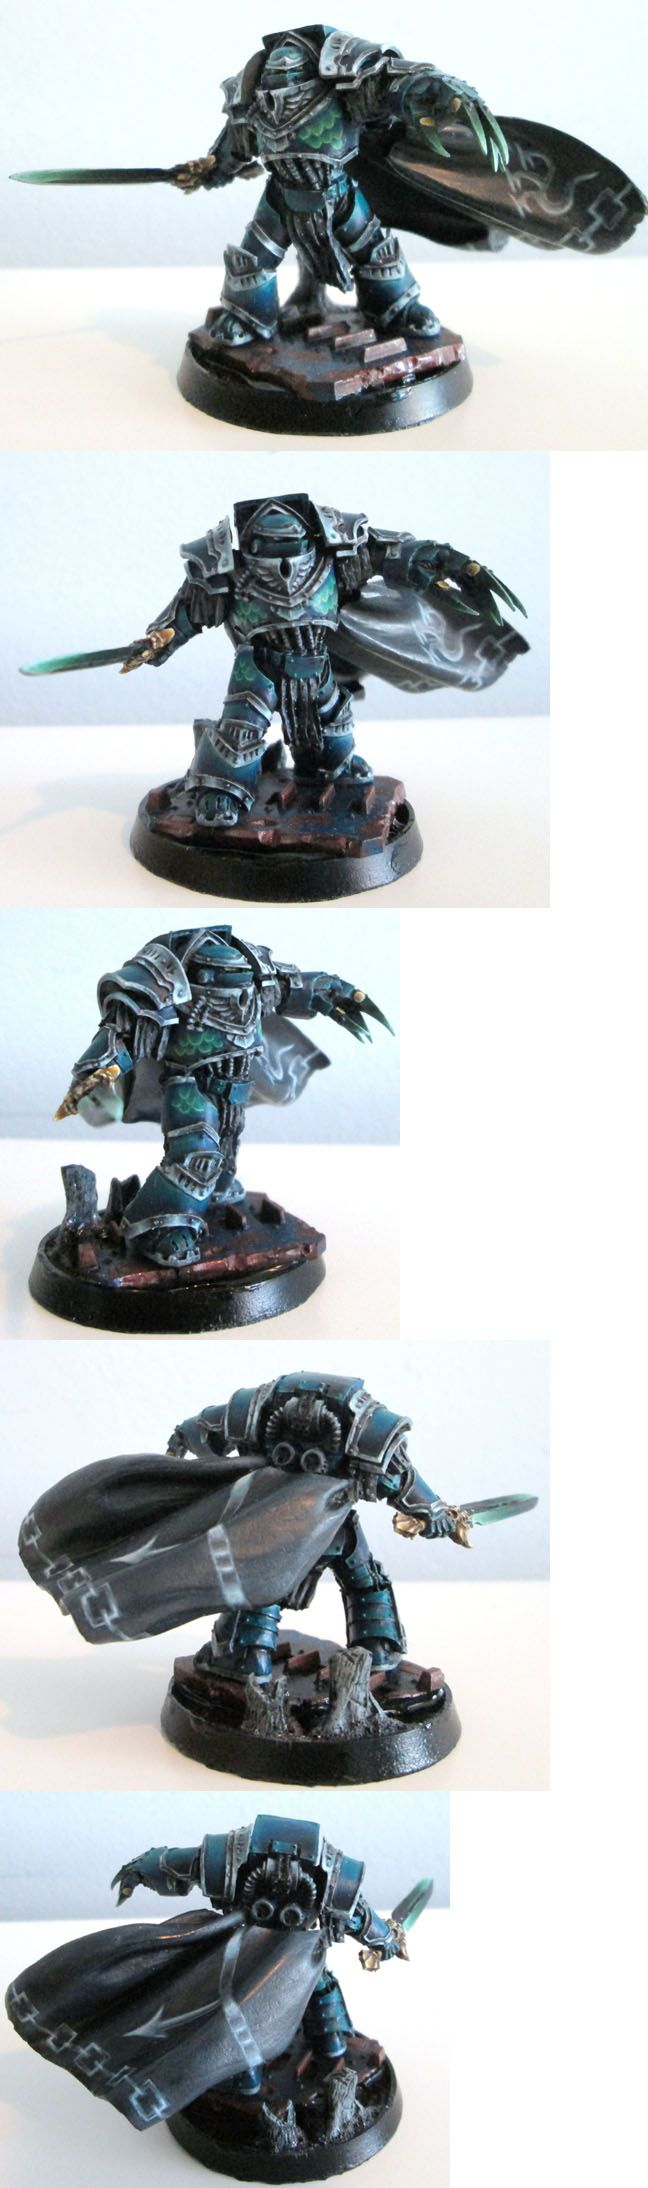 1500 point Alpha Legion army - HALL OF HONOR - The Bolter and Chainsword